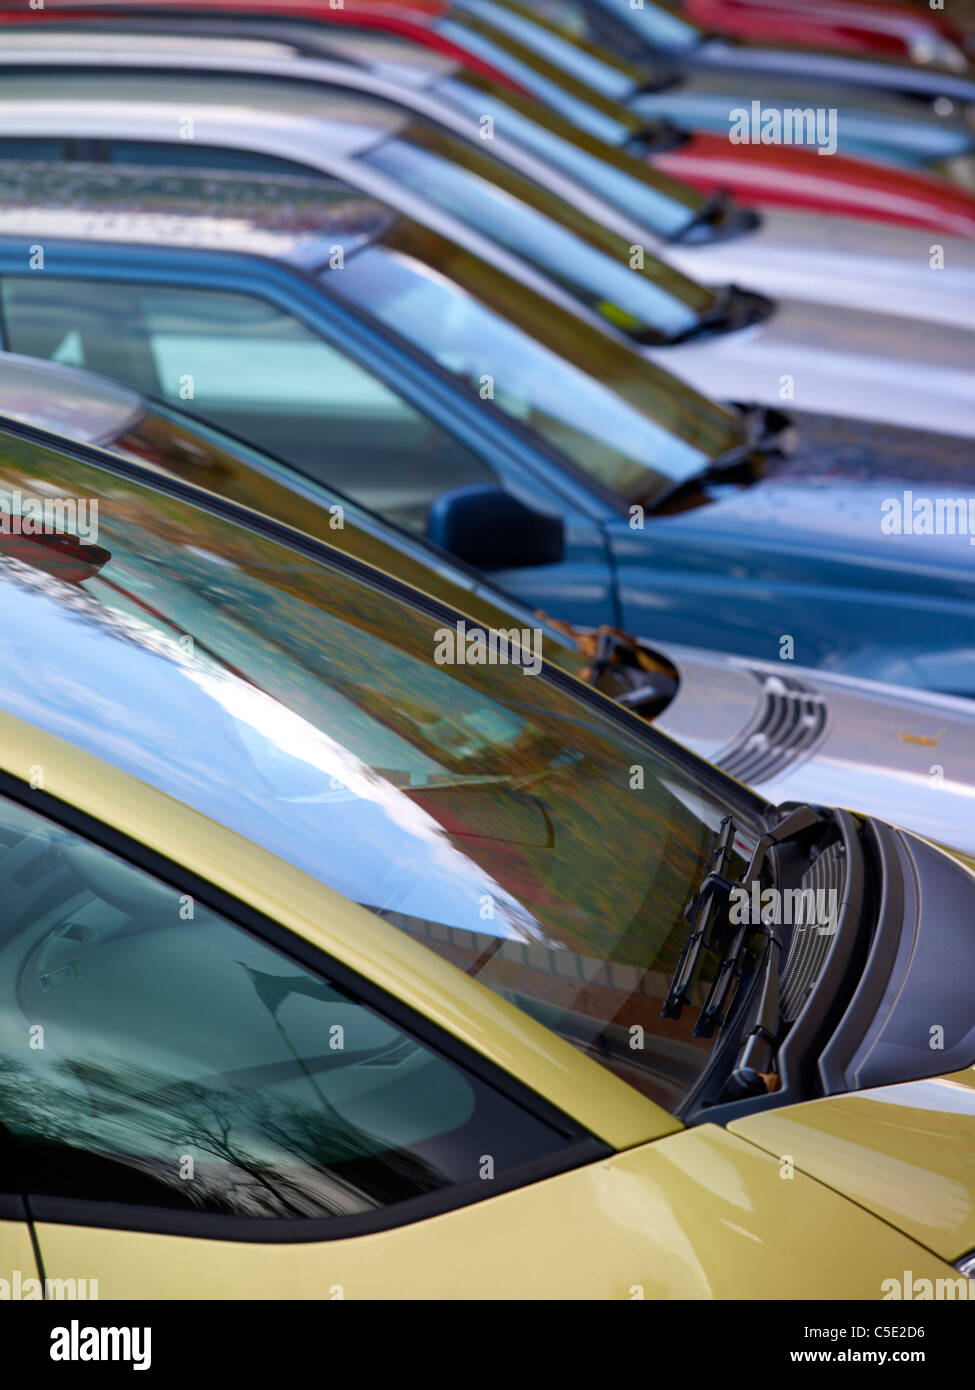 Detail shot of parked cars in a row - Stock Image